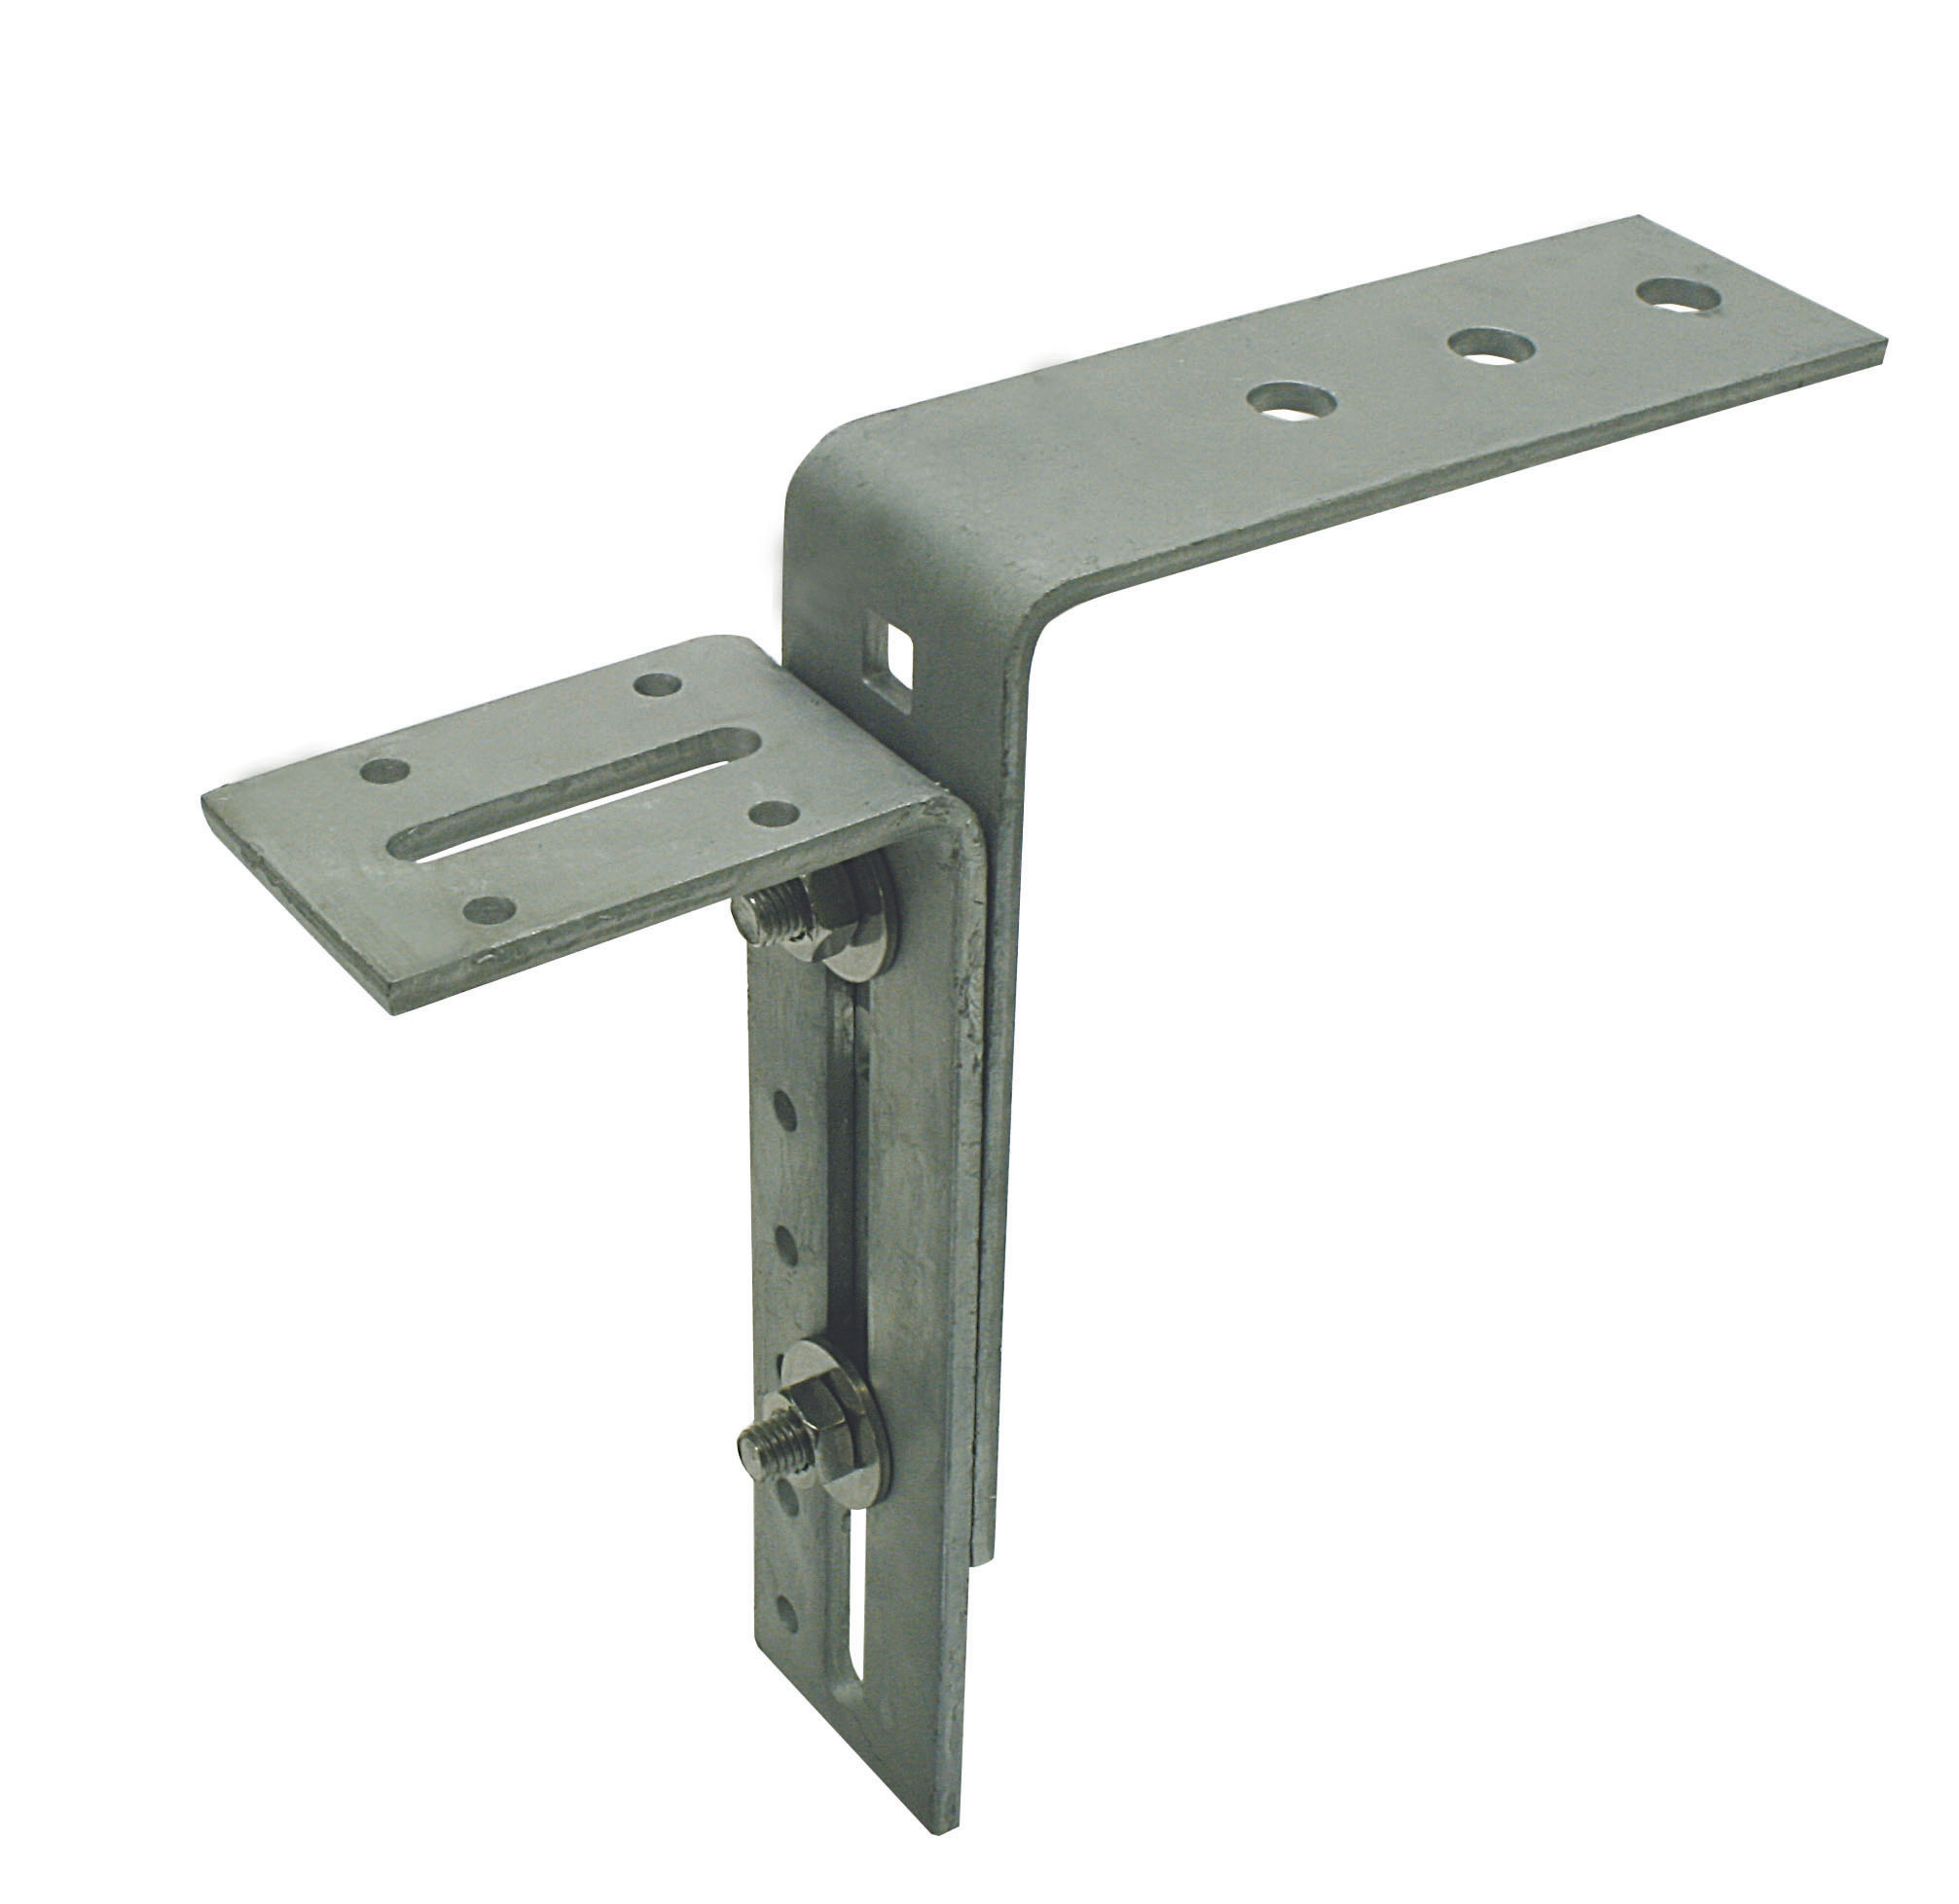 Adjustable frame bracket type A-ZM 95x210/175 60x6/60x5 ZM